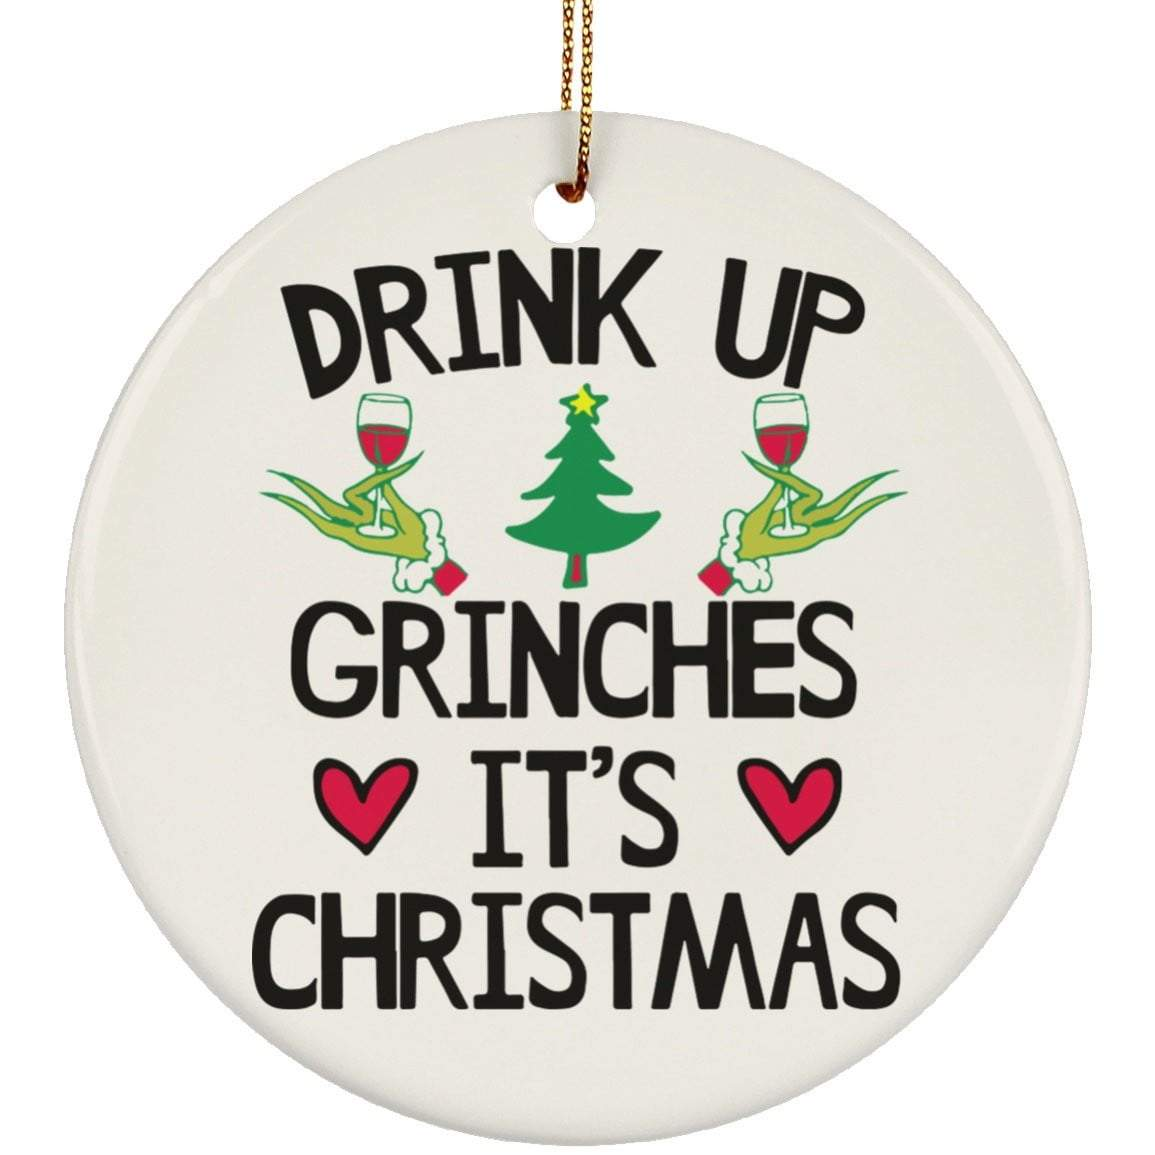 DRINK UP GRINCHES Christmas Ceramic Circle Ornament